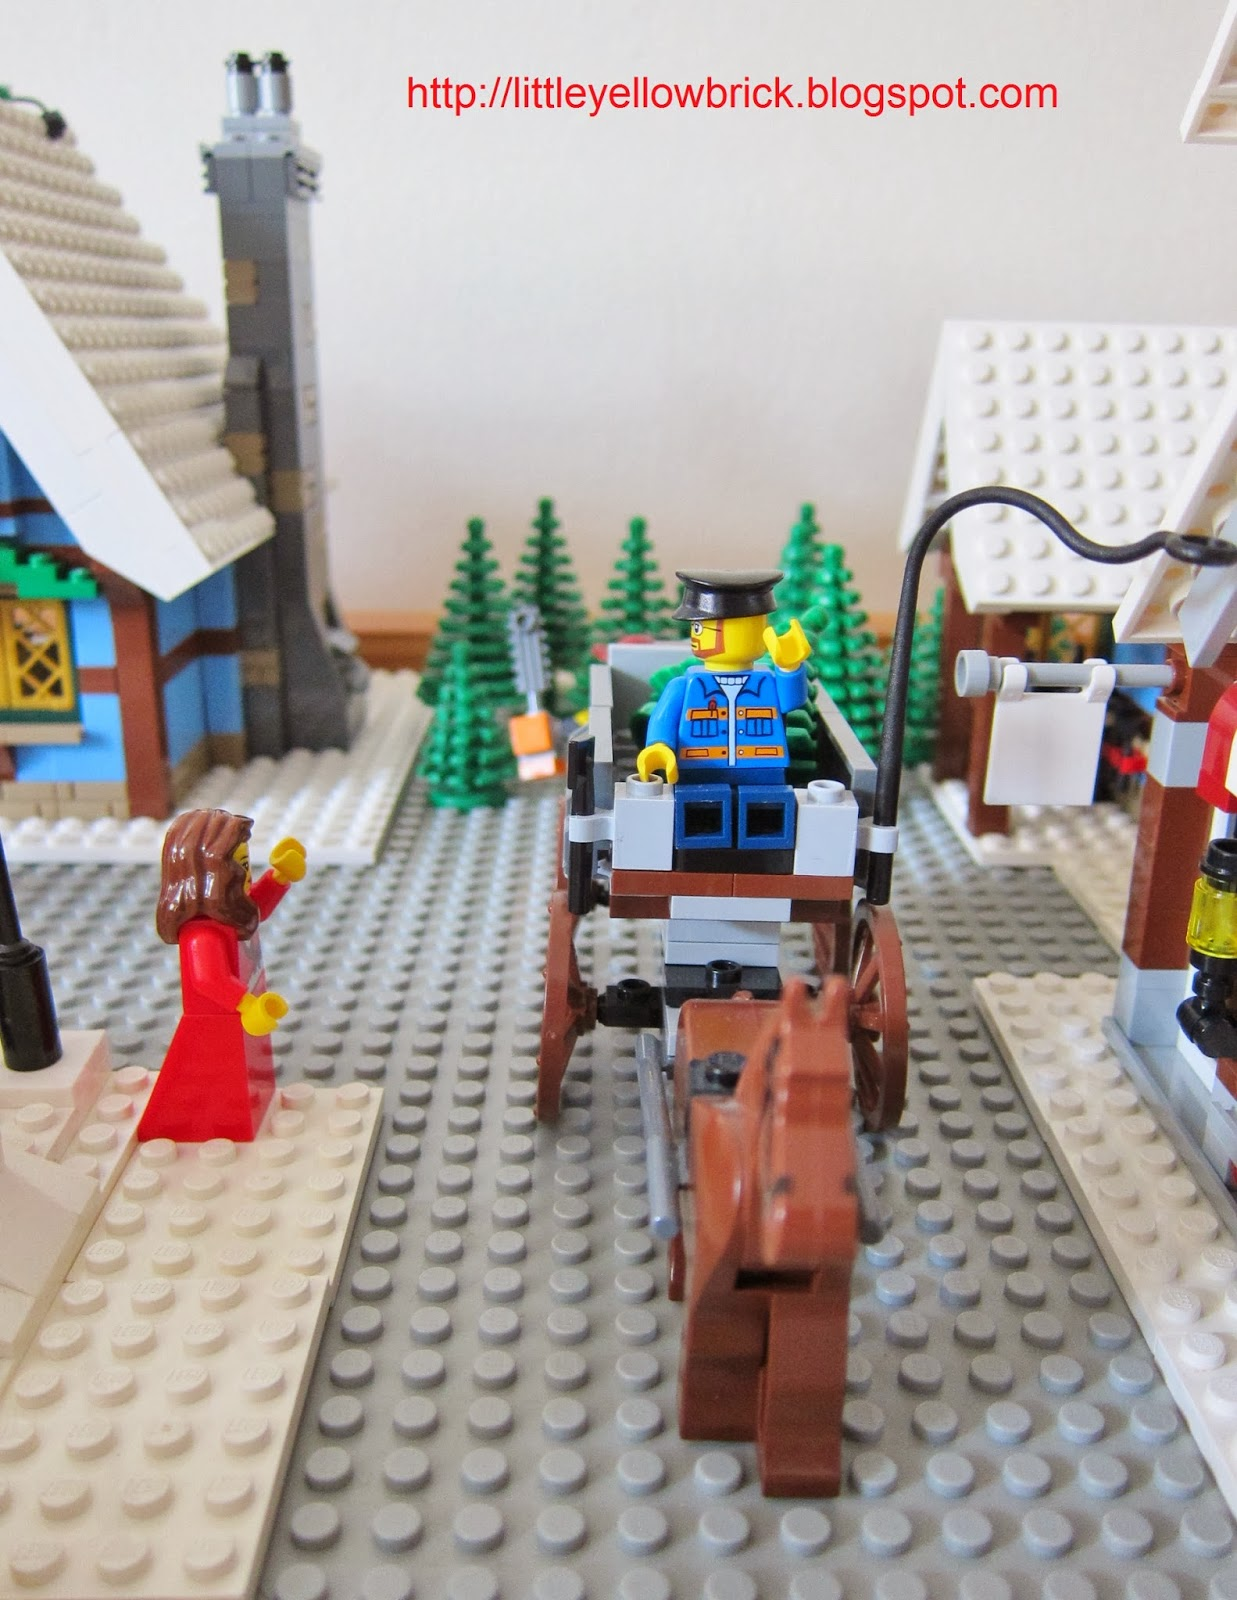 Little Yellow Brick - A Lego Blog: Our Lego Winter Village Town MOC